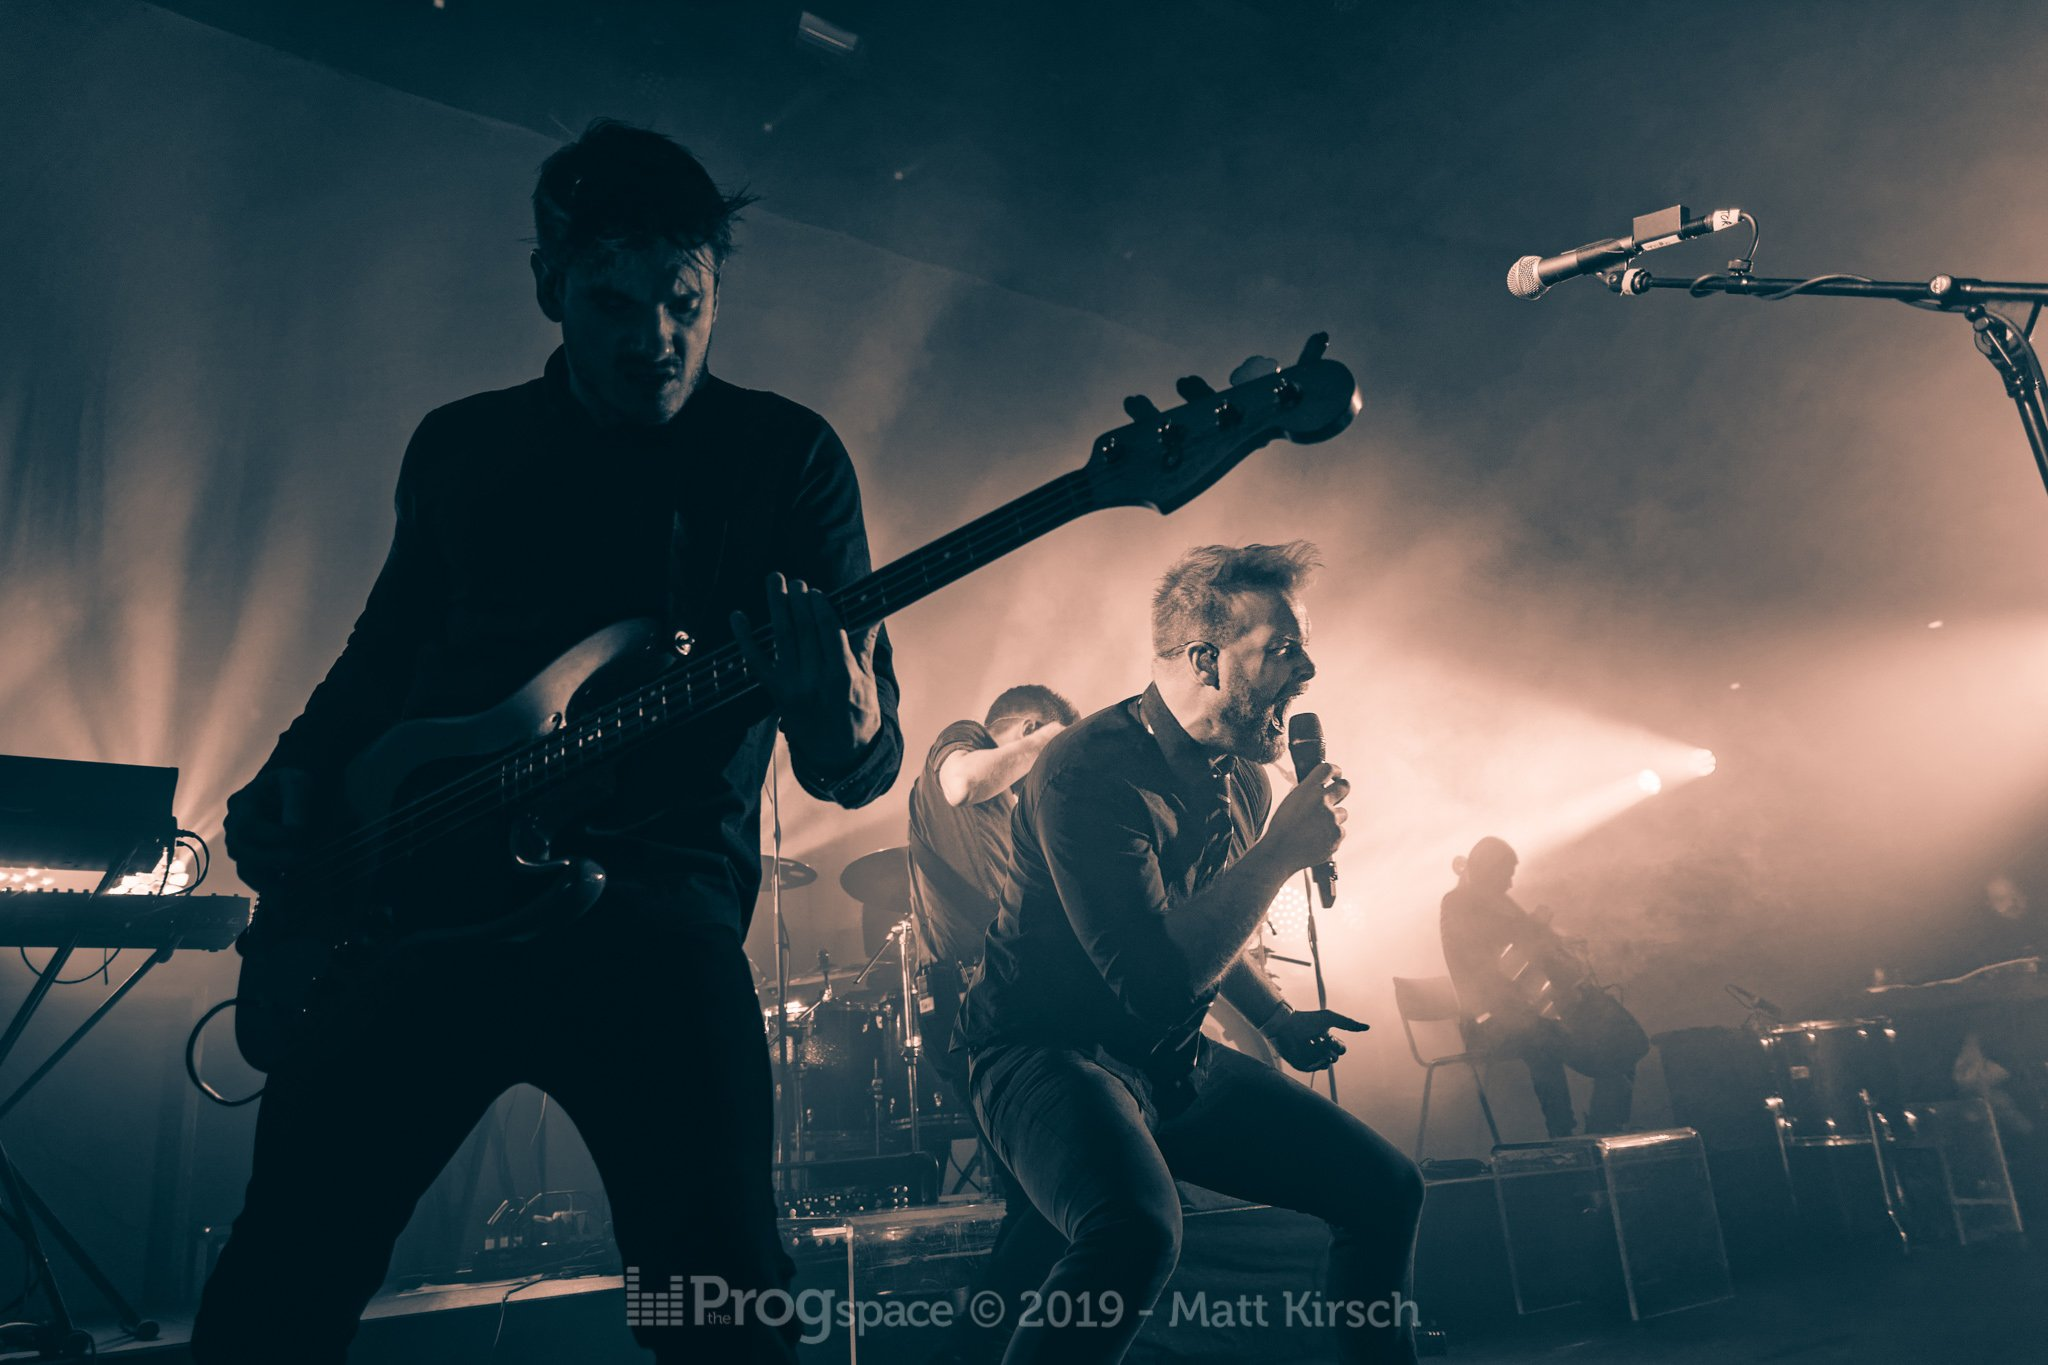 Leprous at Gebr. de Nobel, Leiden, 3 November 2019